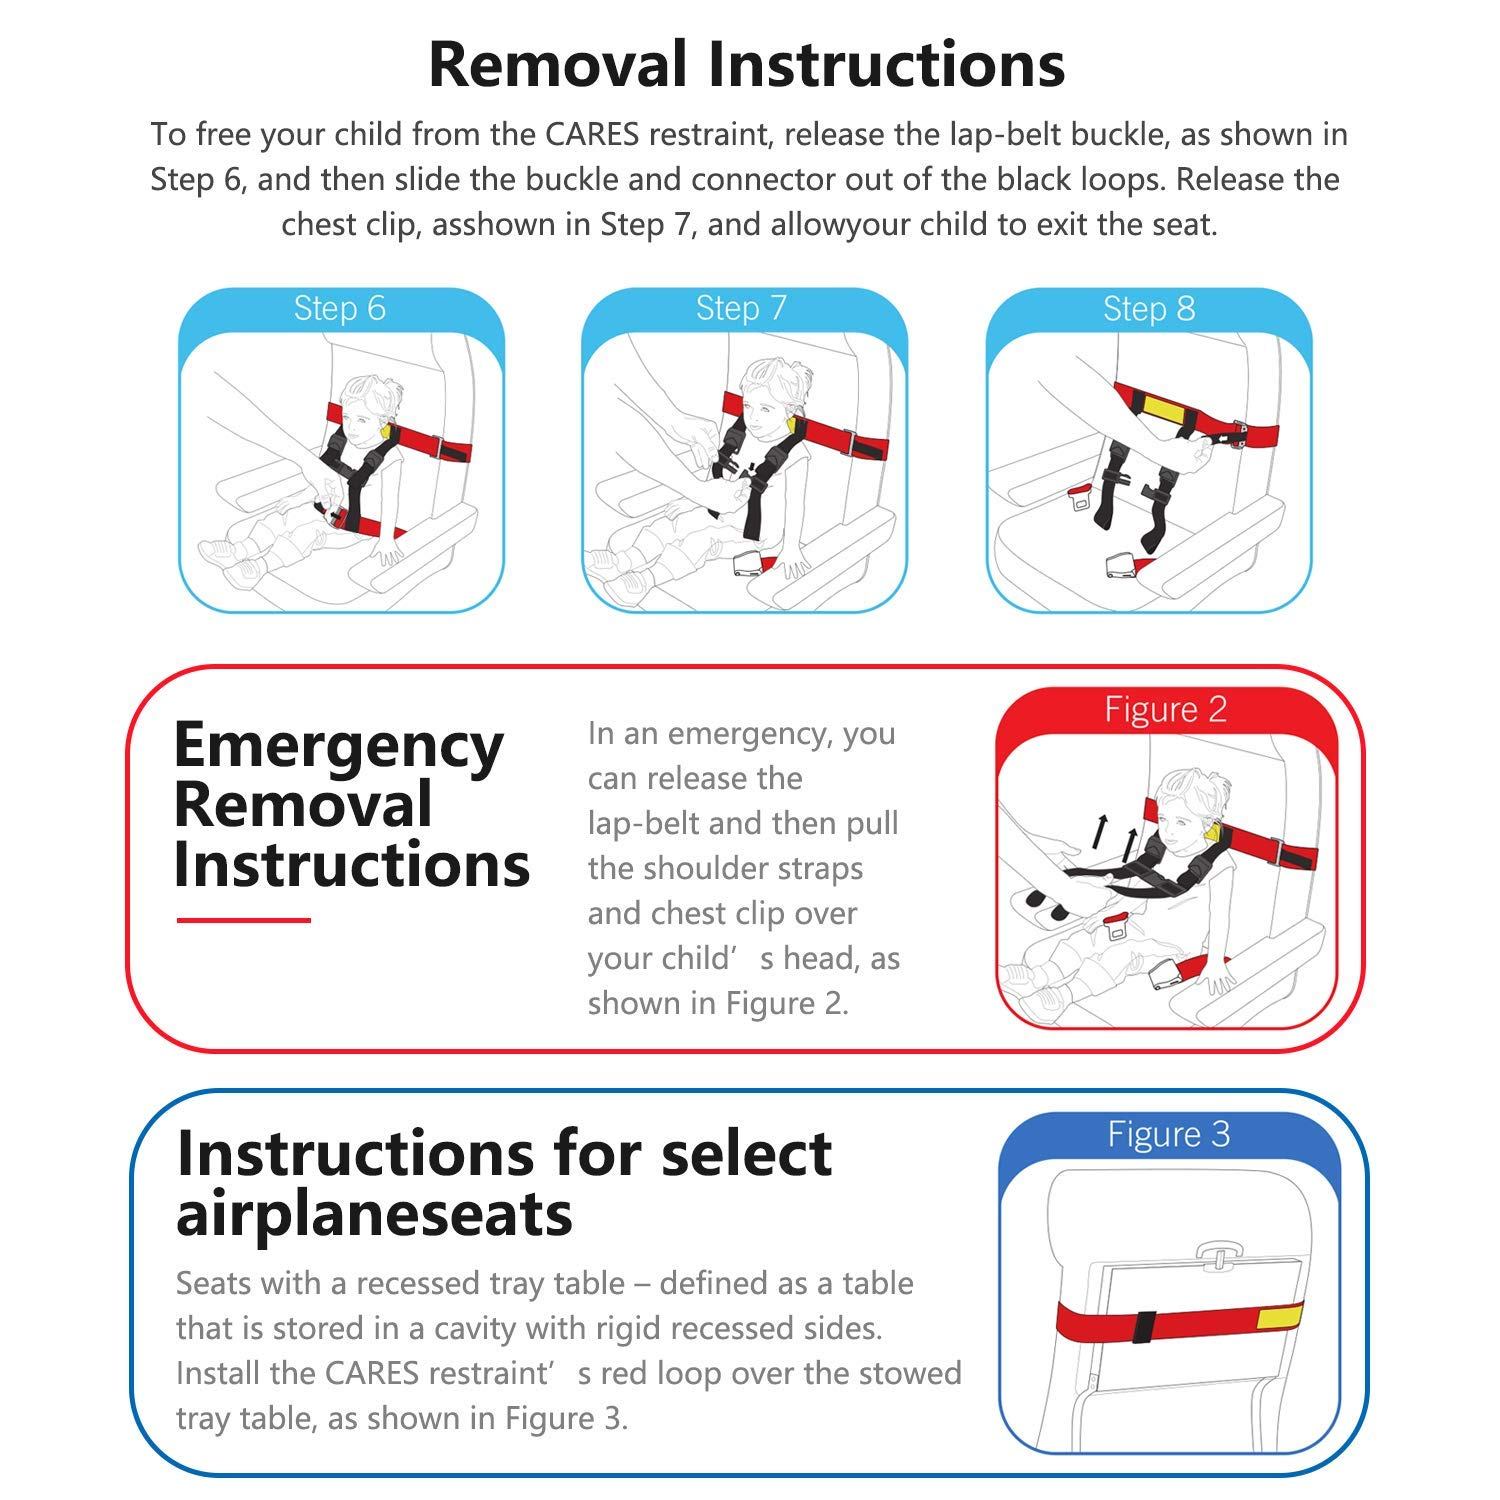 Child Airplane Travel Safety Harness Approved by FAA, Clip Strap Restraint System with Safe Airplane Cares Restraining Fly Travel Plane for Toddler Kids Child Infant by Mestron (Image #7)